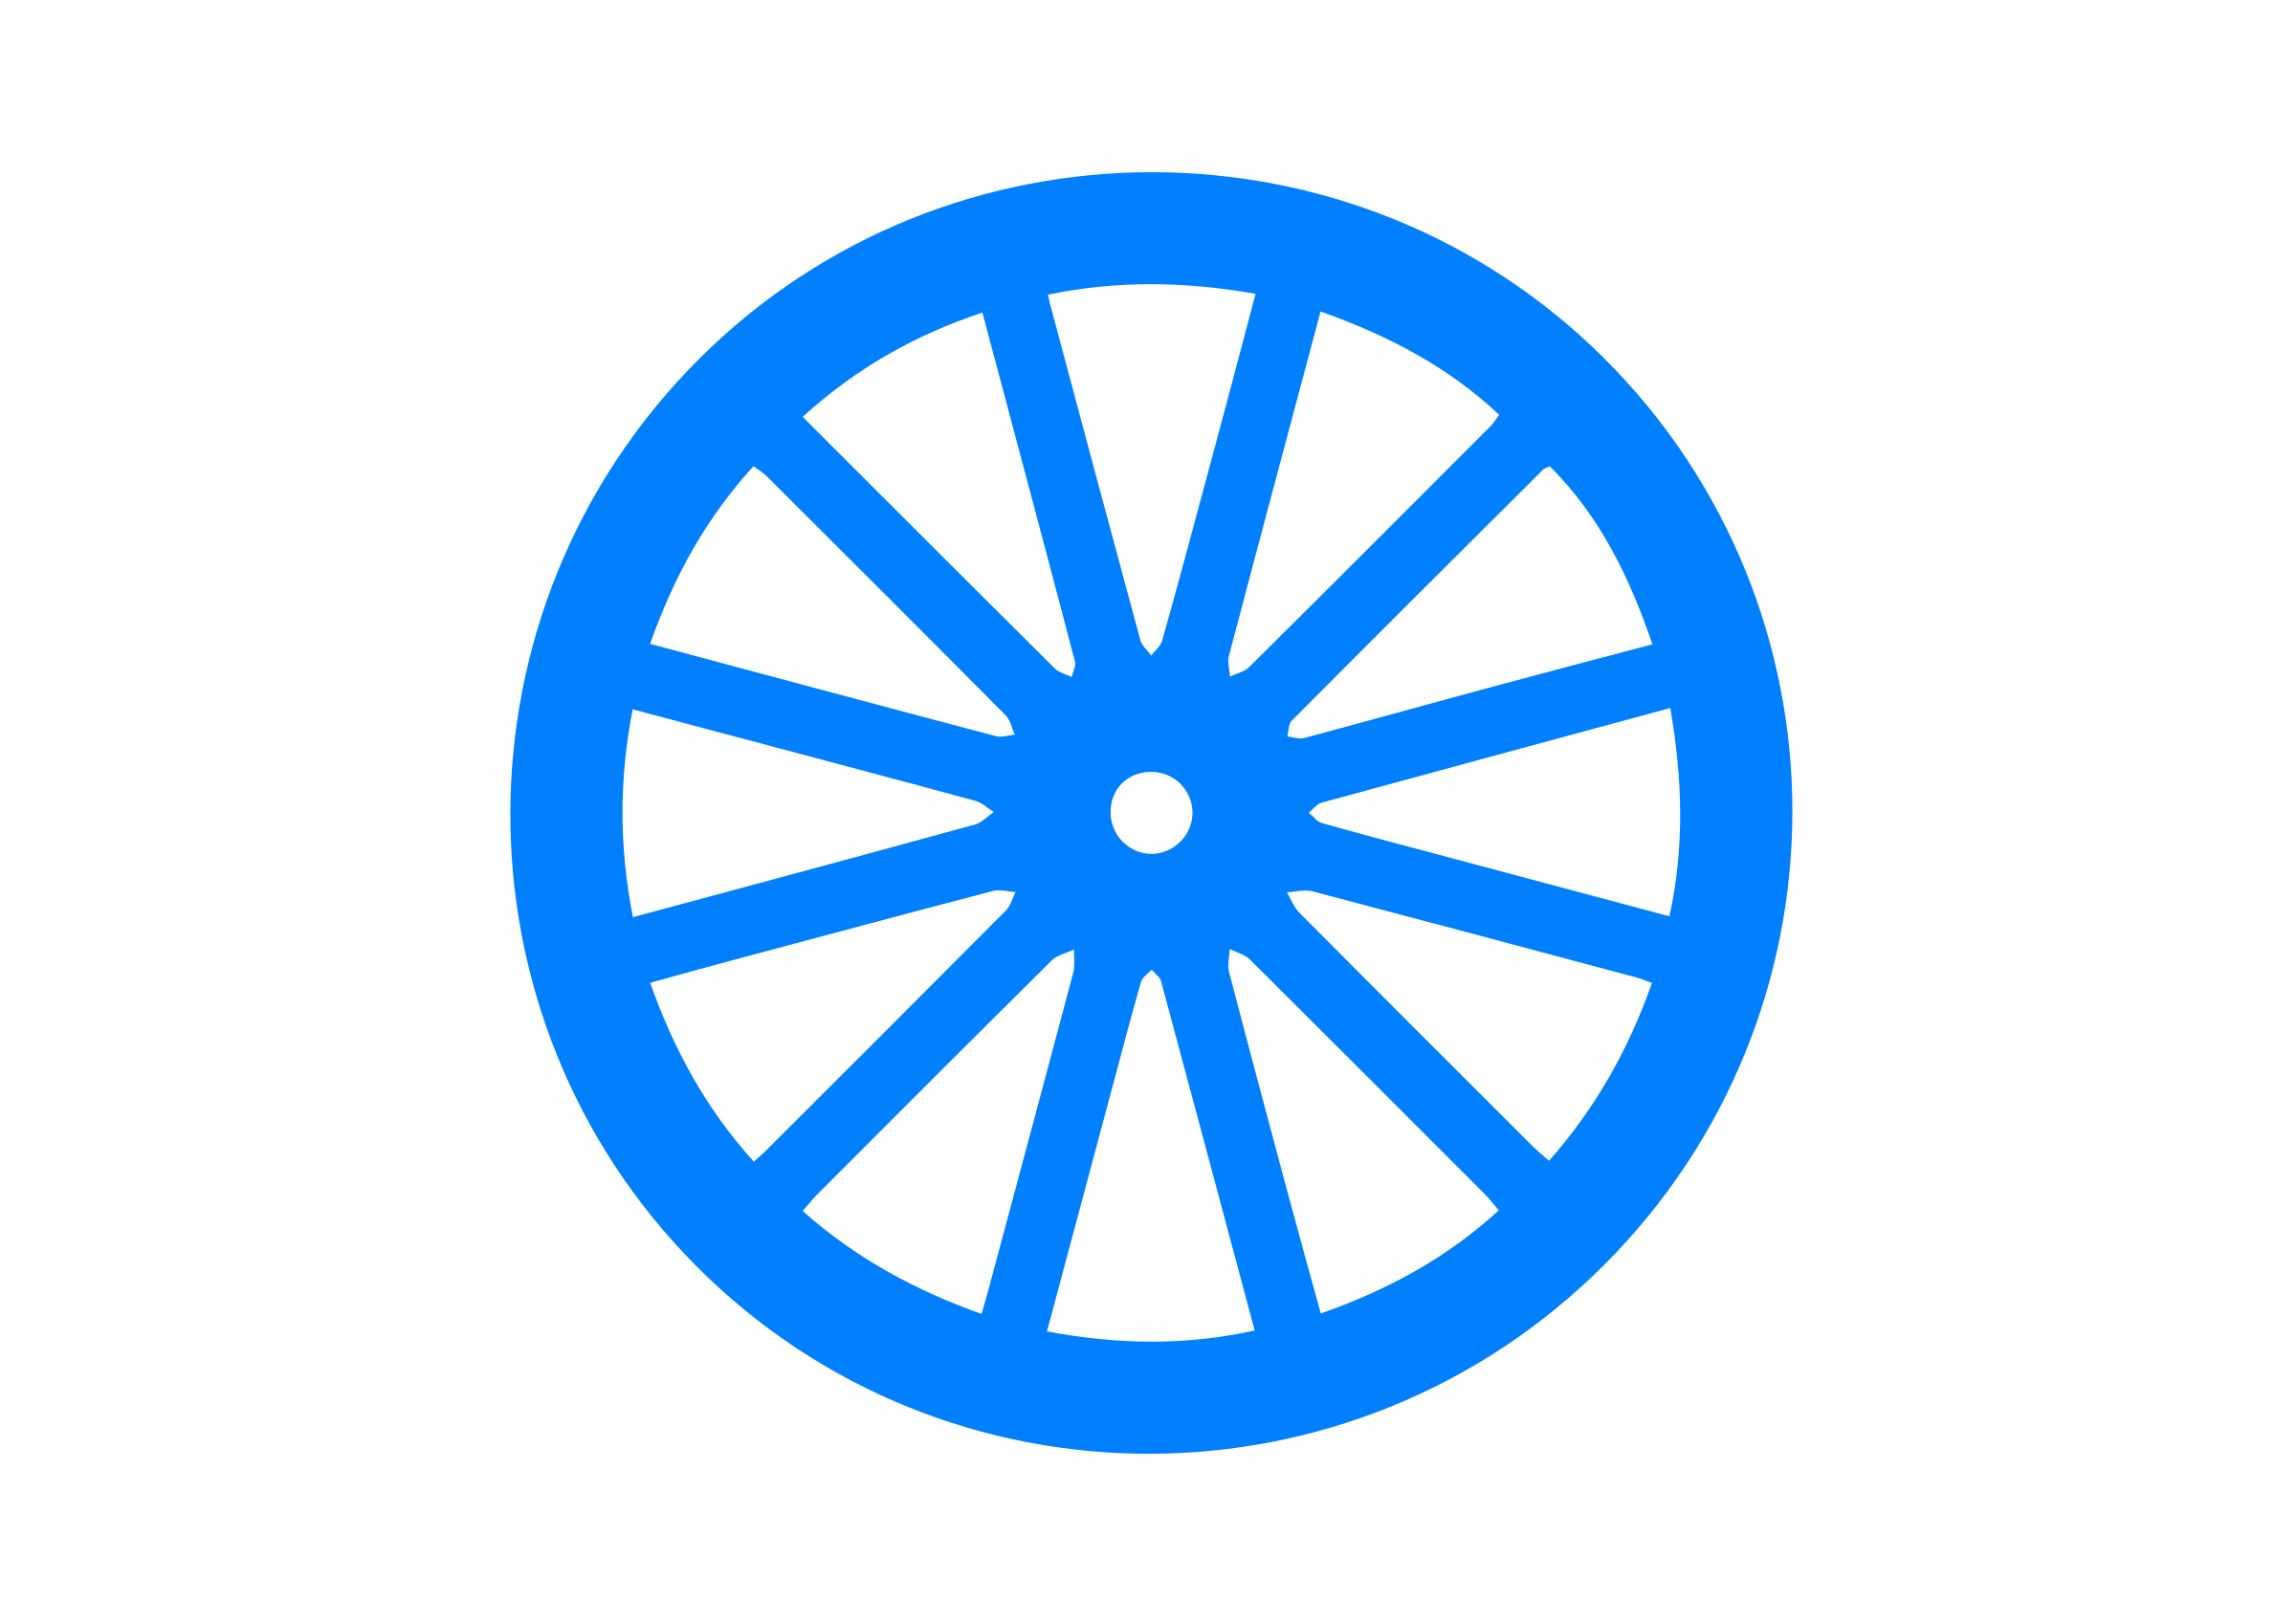 Blue icons png free. Wagon clipart wheel cart